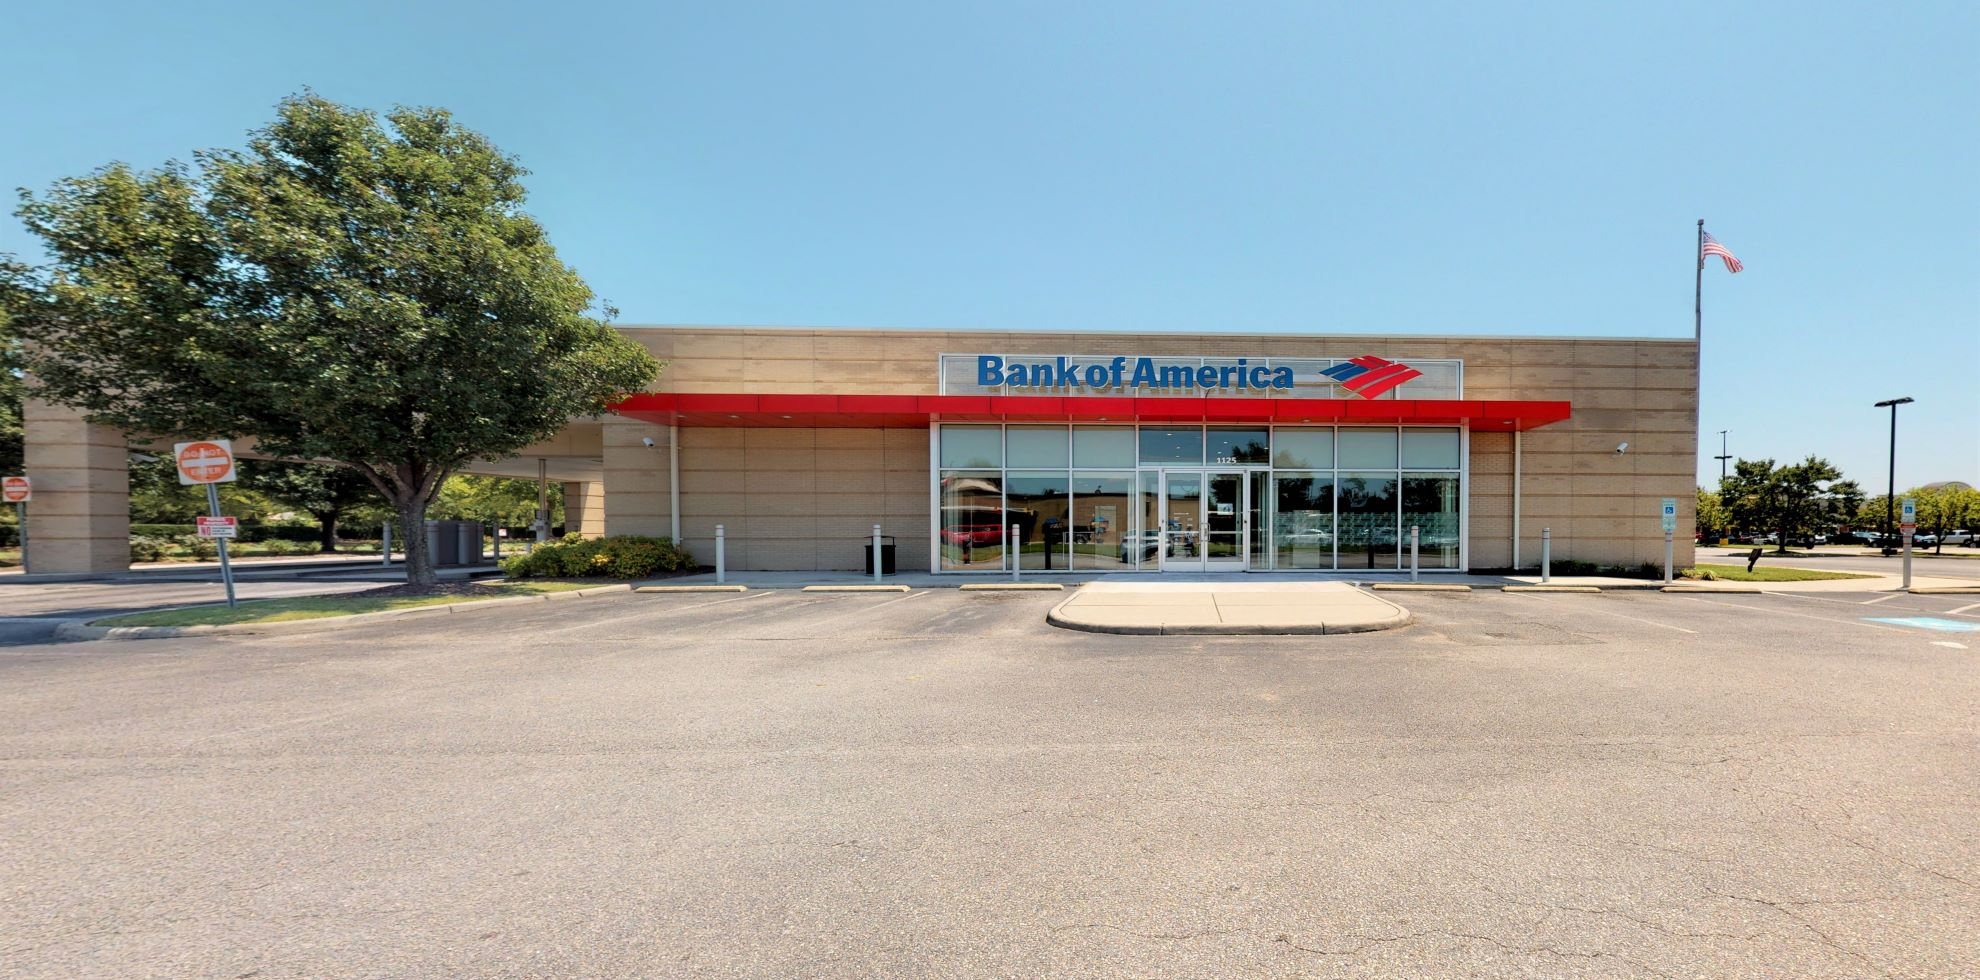 Bank of America financial center with drive-thru ATM and teller | 1125 Nimmo Pkwy, Virginia Beach, VA 23456